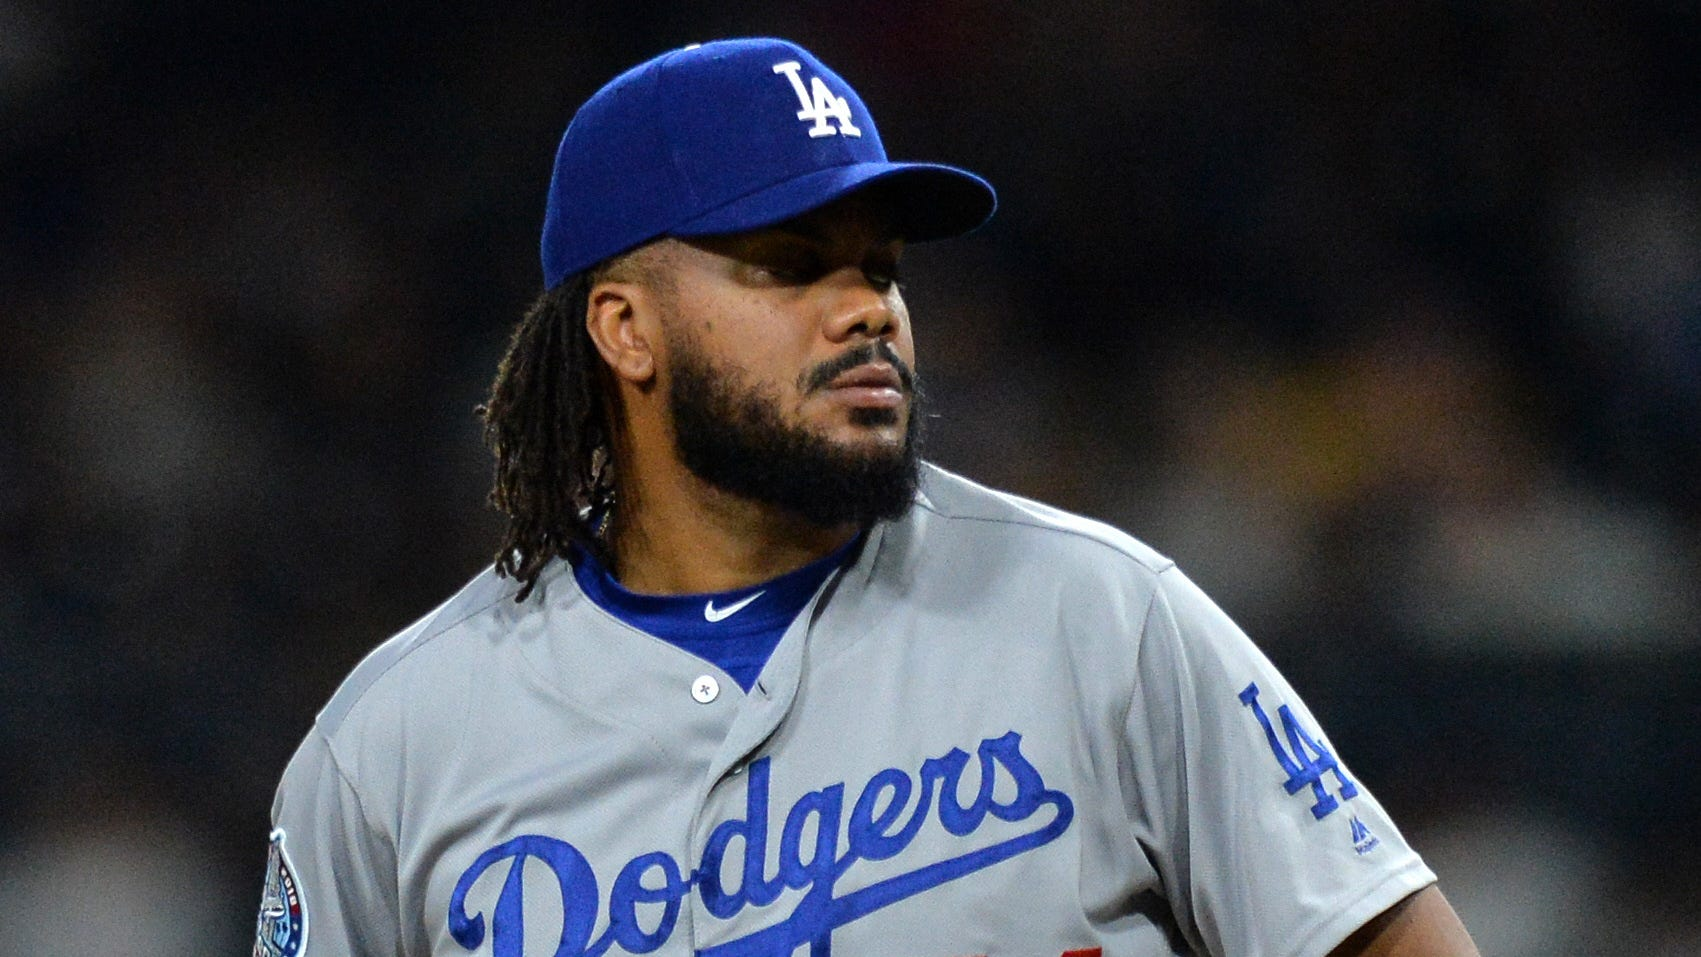 Dodgers closer Kenley Jansen has not pitched since Aug. 7.